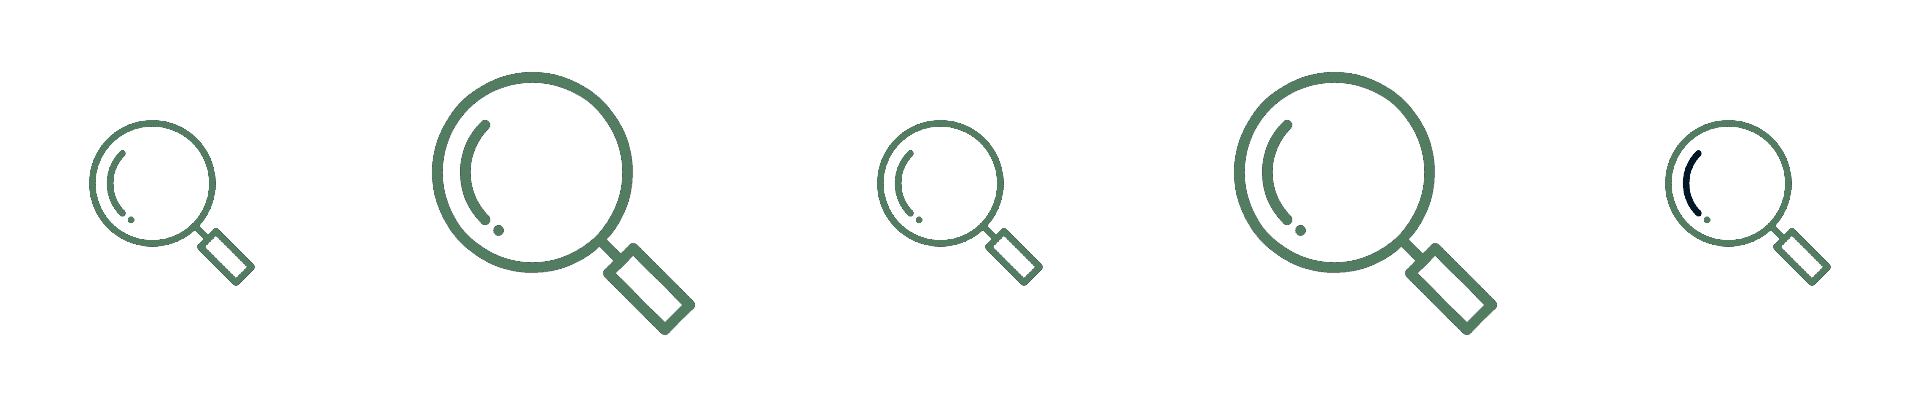 magnifying glass 2 divider